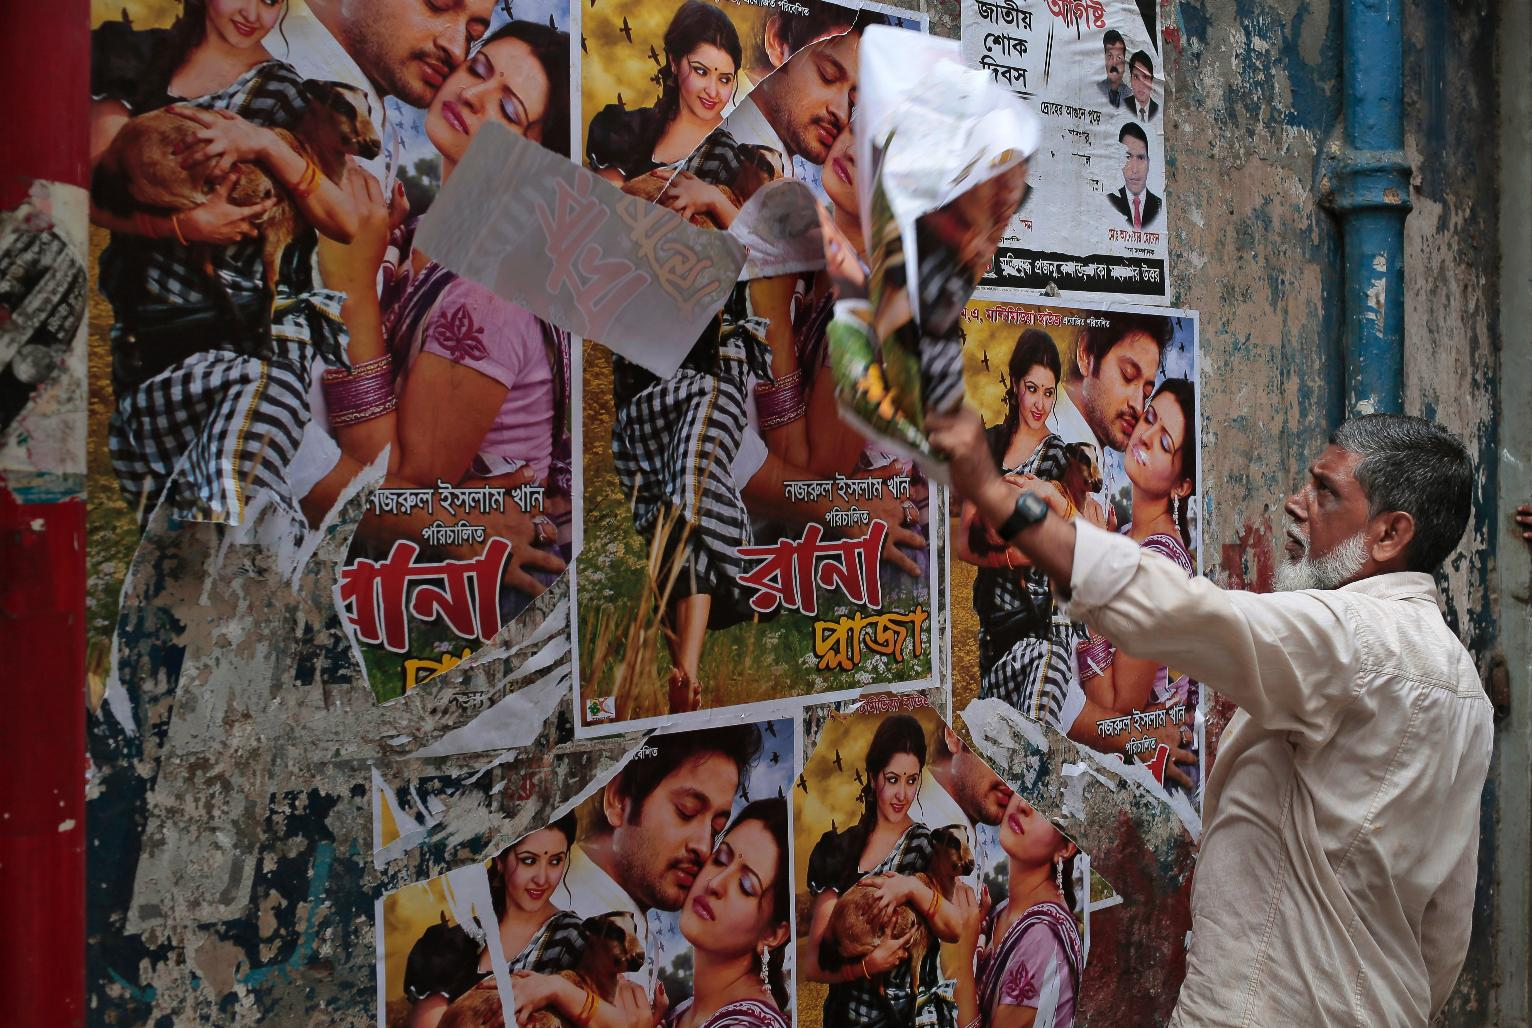 bangladeshi film industry essay An investigative report on the textile industry has never been published in bangladesh related spiegel online links as a bangladeshi.